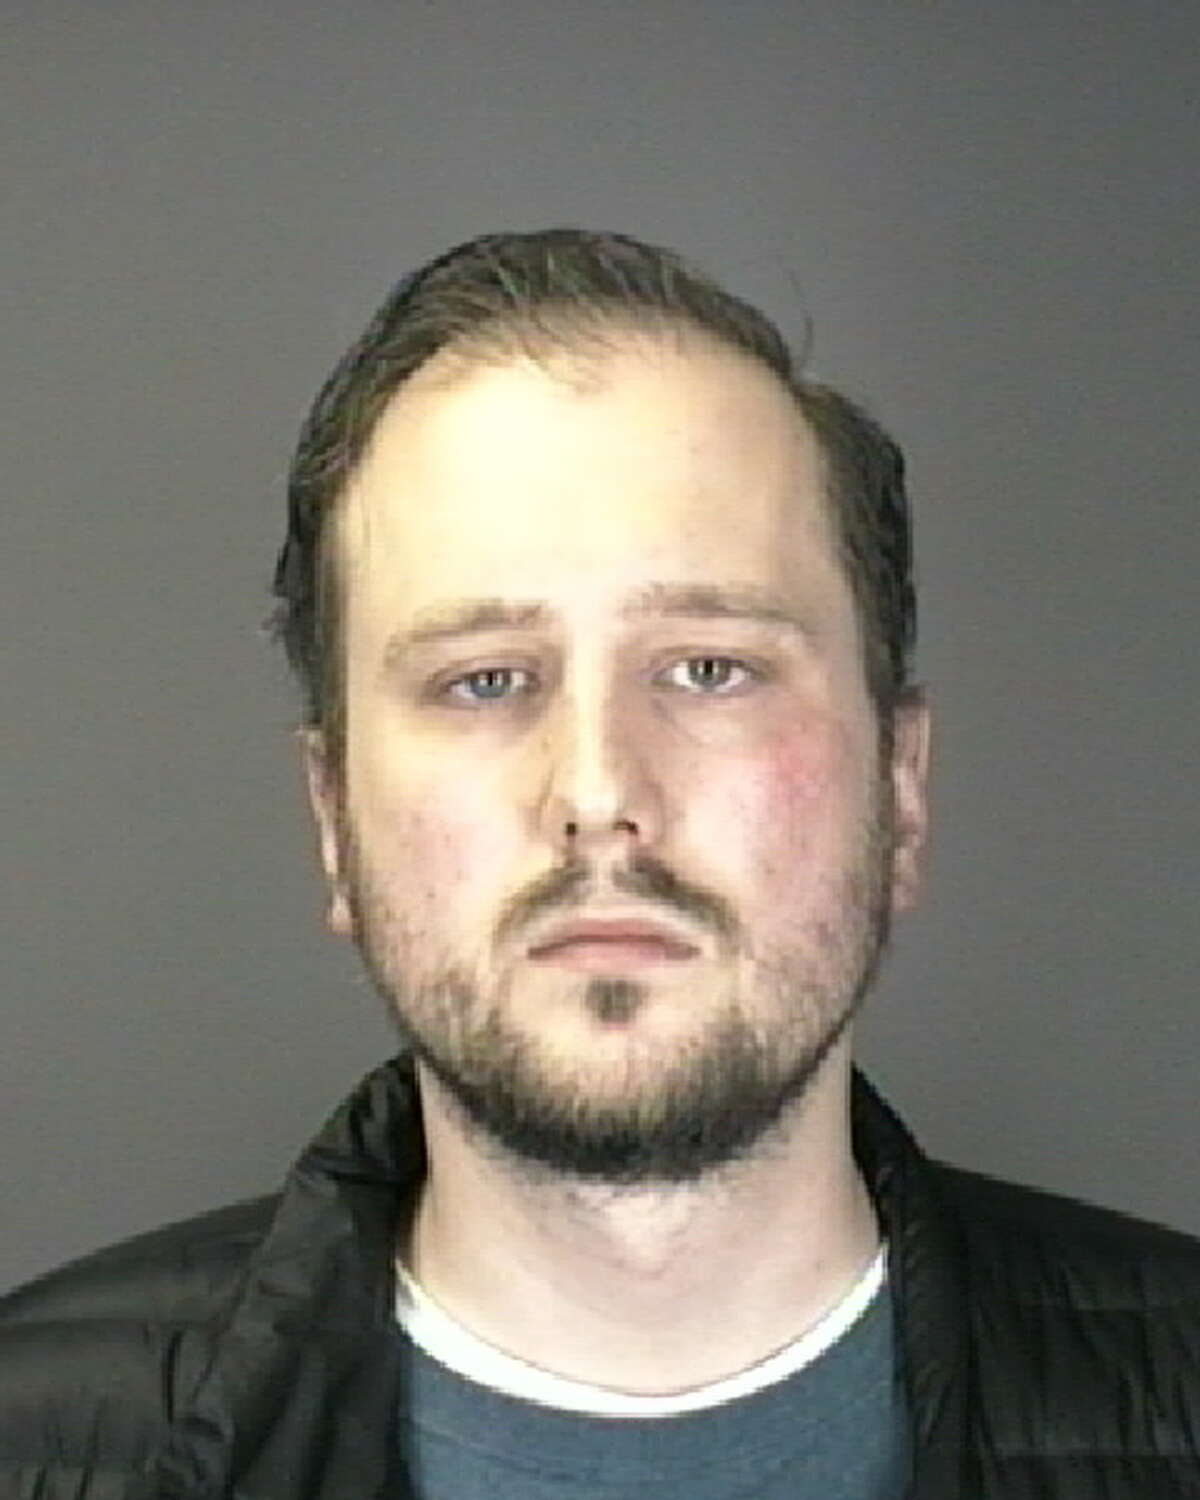 Jonathan H. Waters pleaded guilty to felony unlawful surveillance and was sentenced to 1 to 3 years in state prison in February 2018.